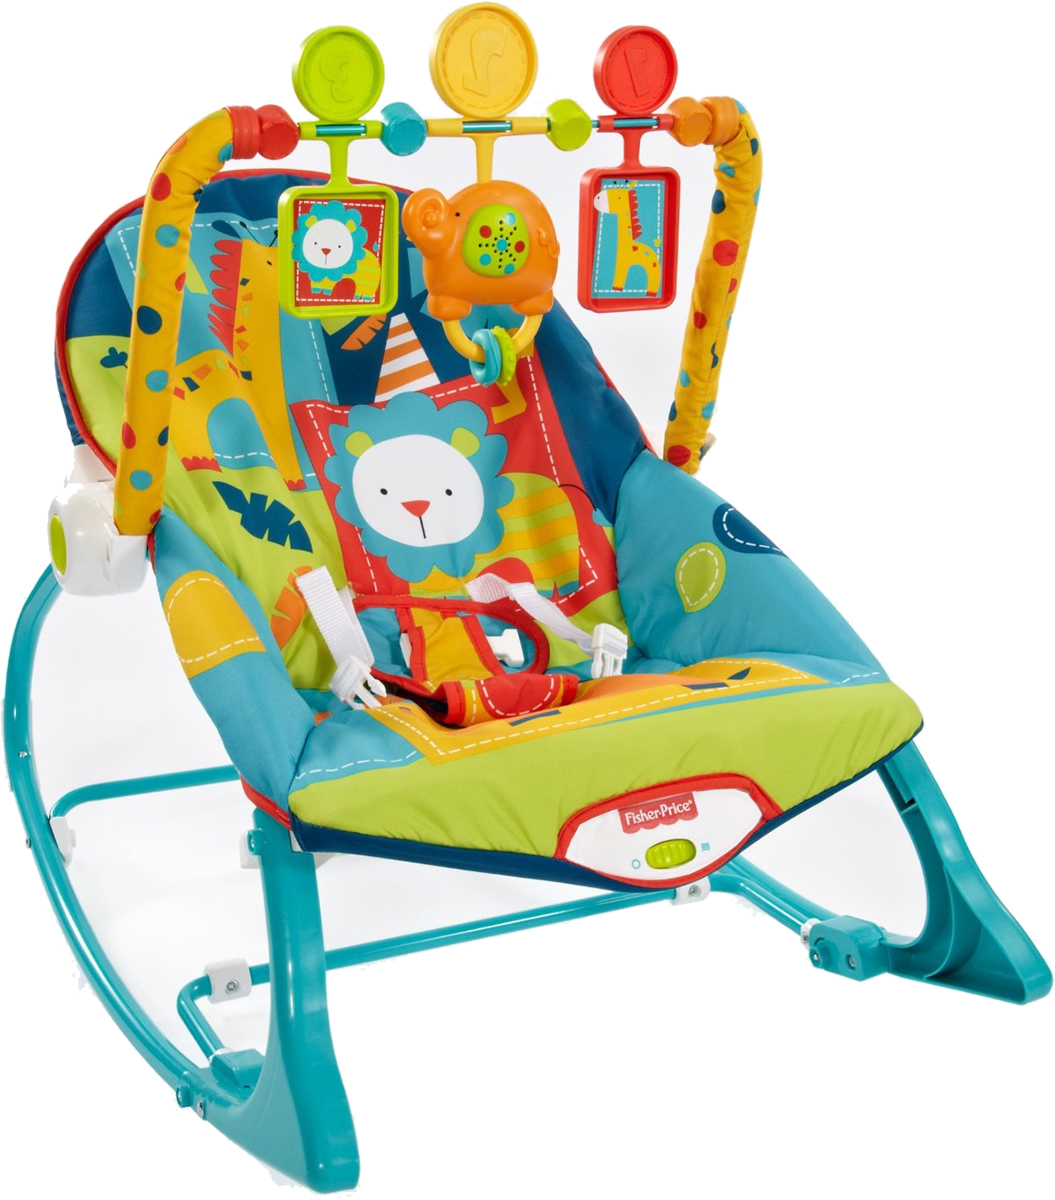 Dark Safari Fisher-Price Infant-to-Toddler Rocker